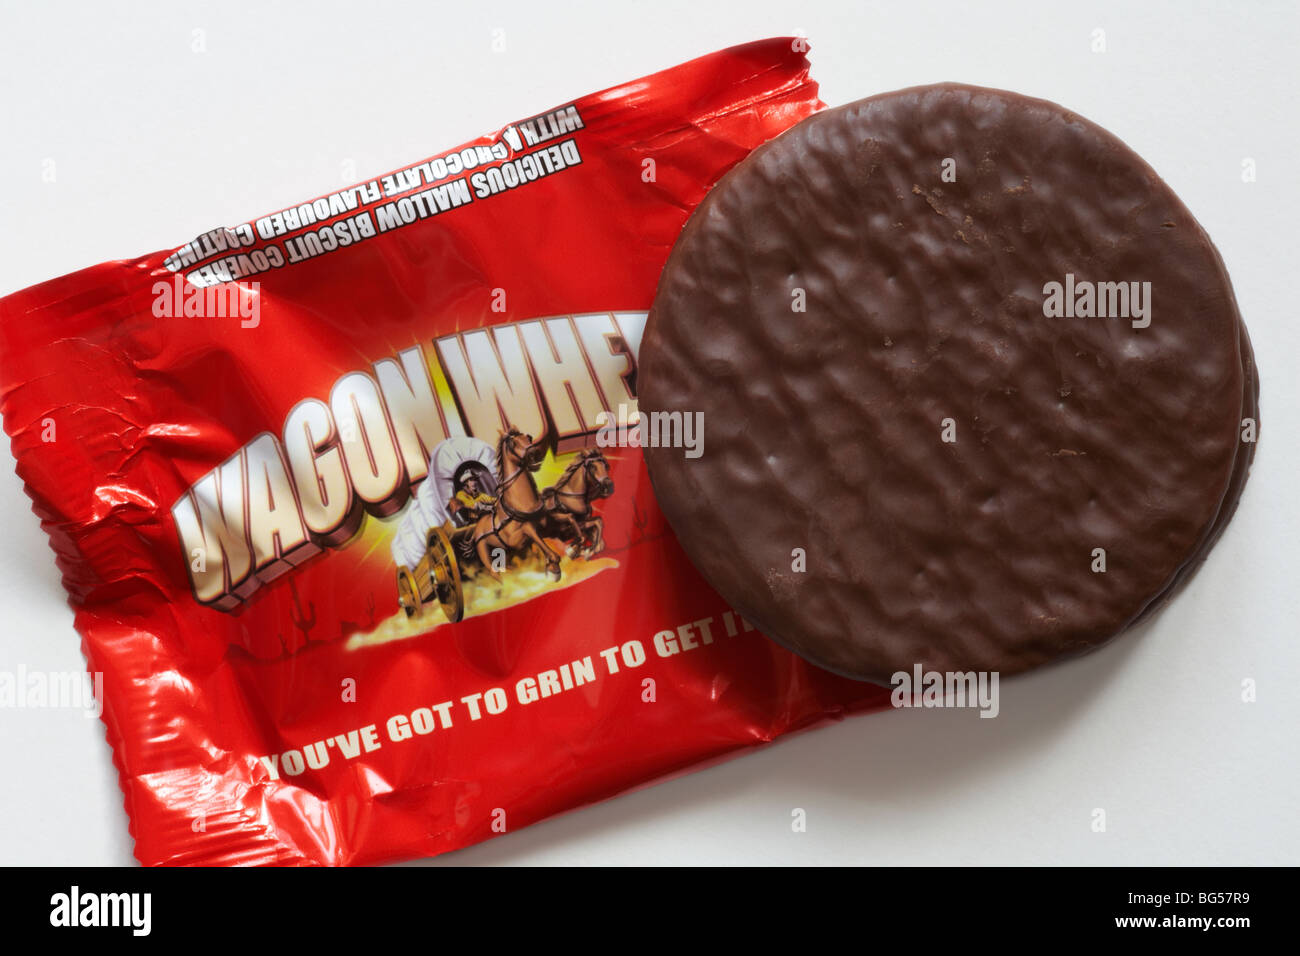 Wagon Wheels Biscuit High Resolution Stock Photography And Images Alamy